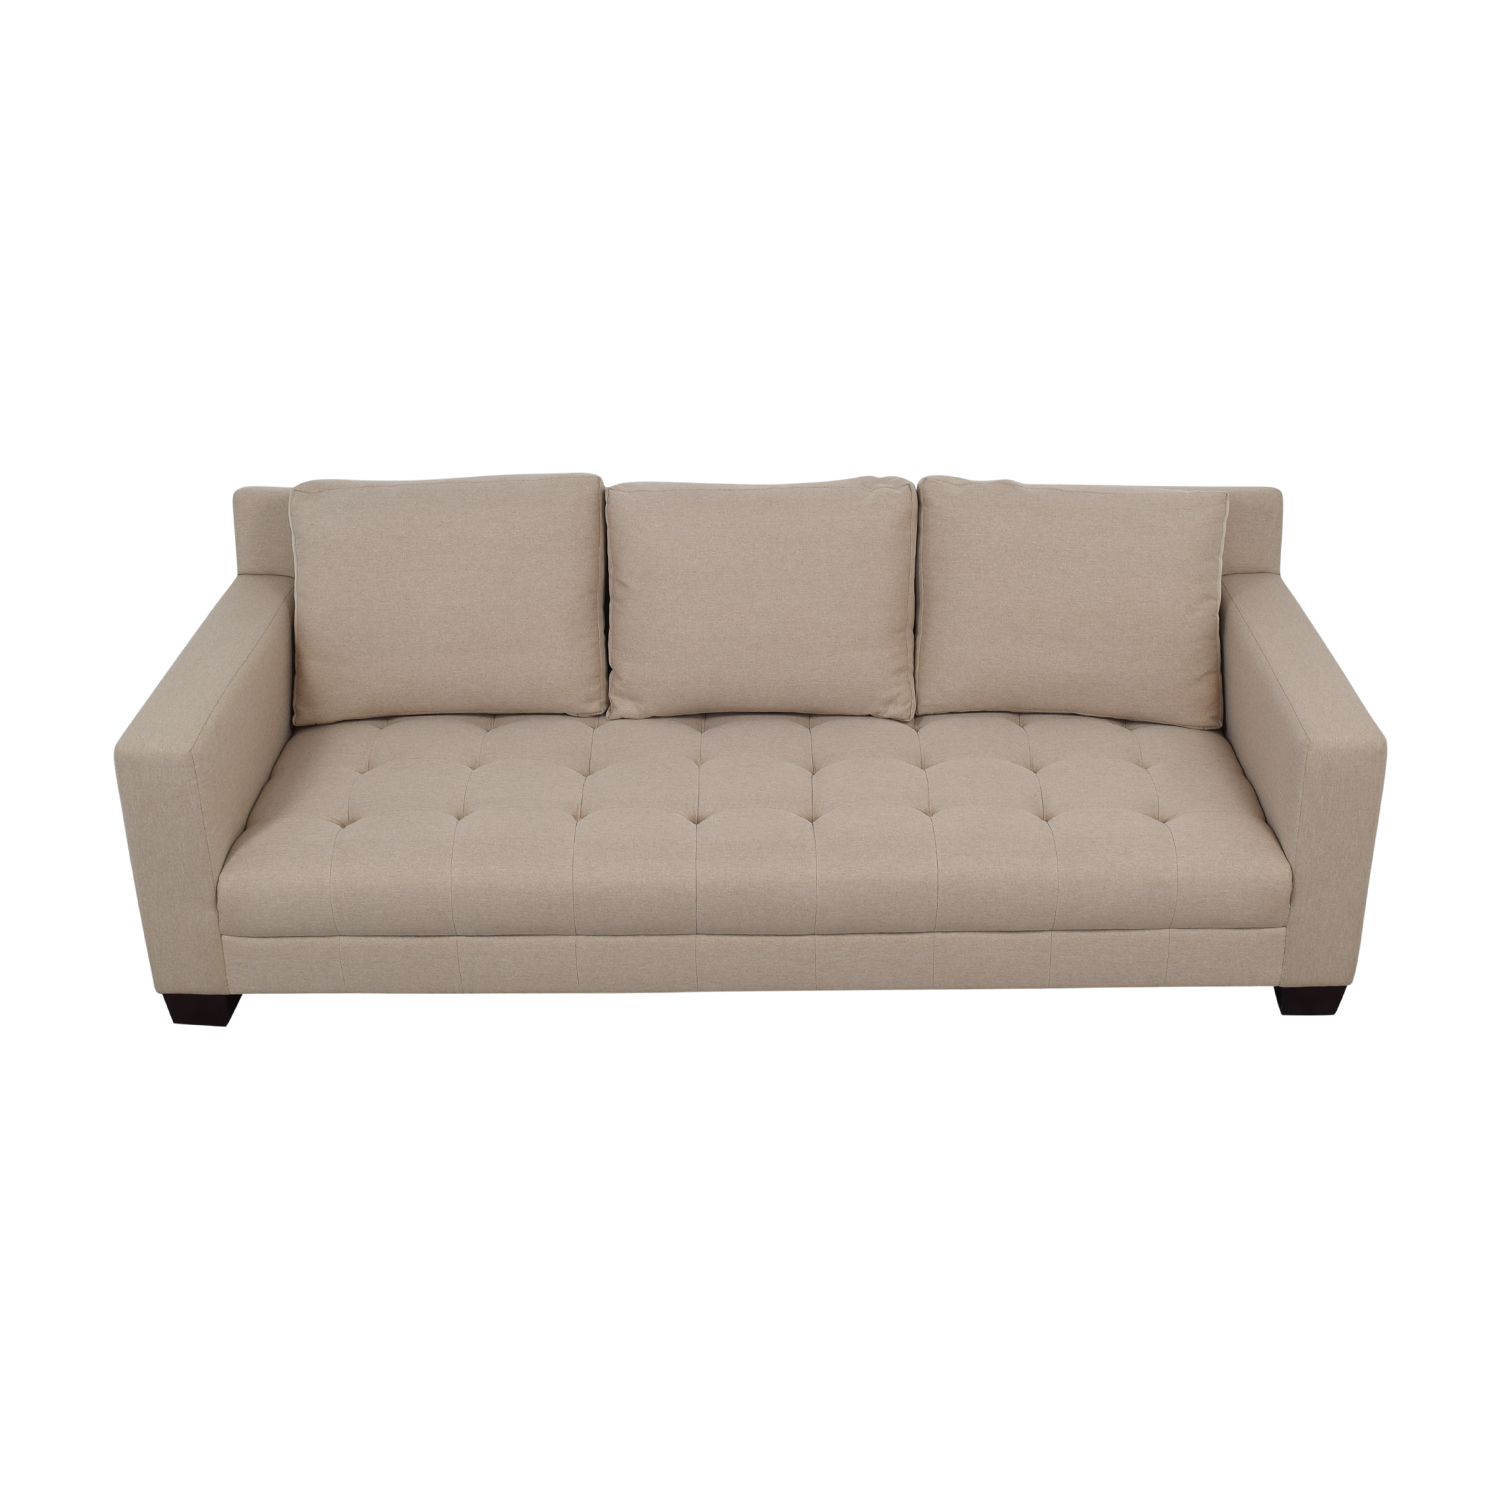 Furniture Masters Gray Tufted Single Cushion Sofa / Classic Sofas